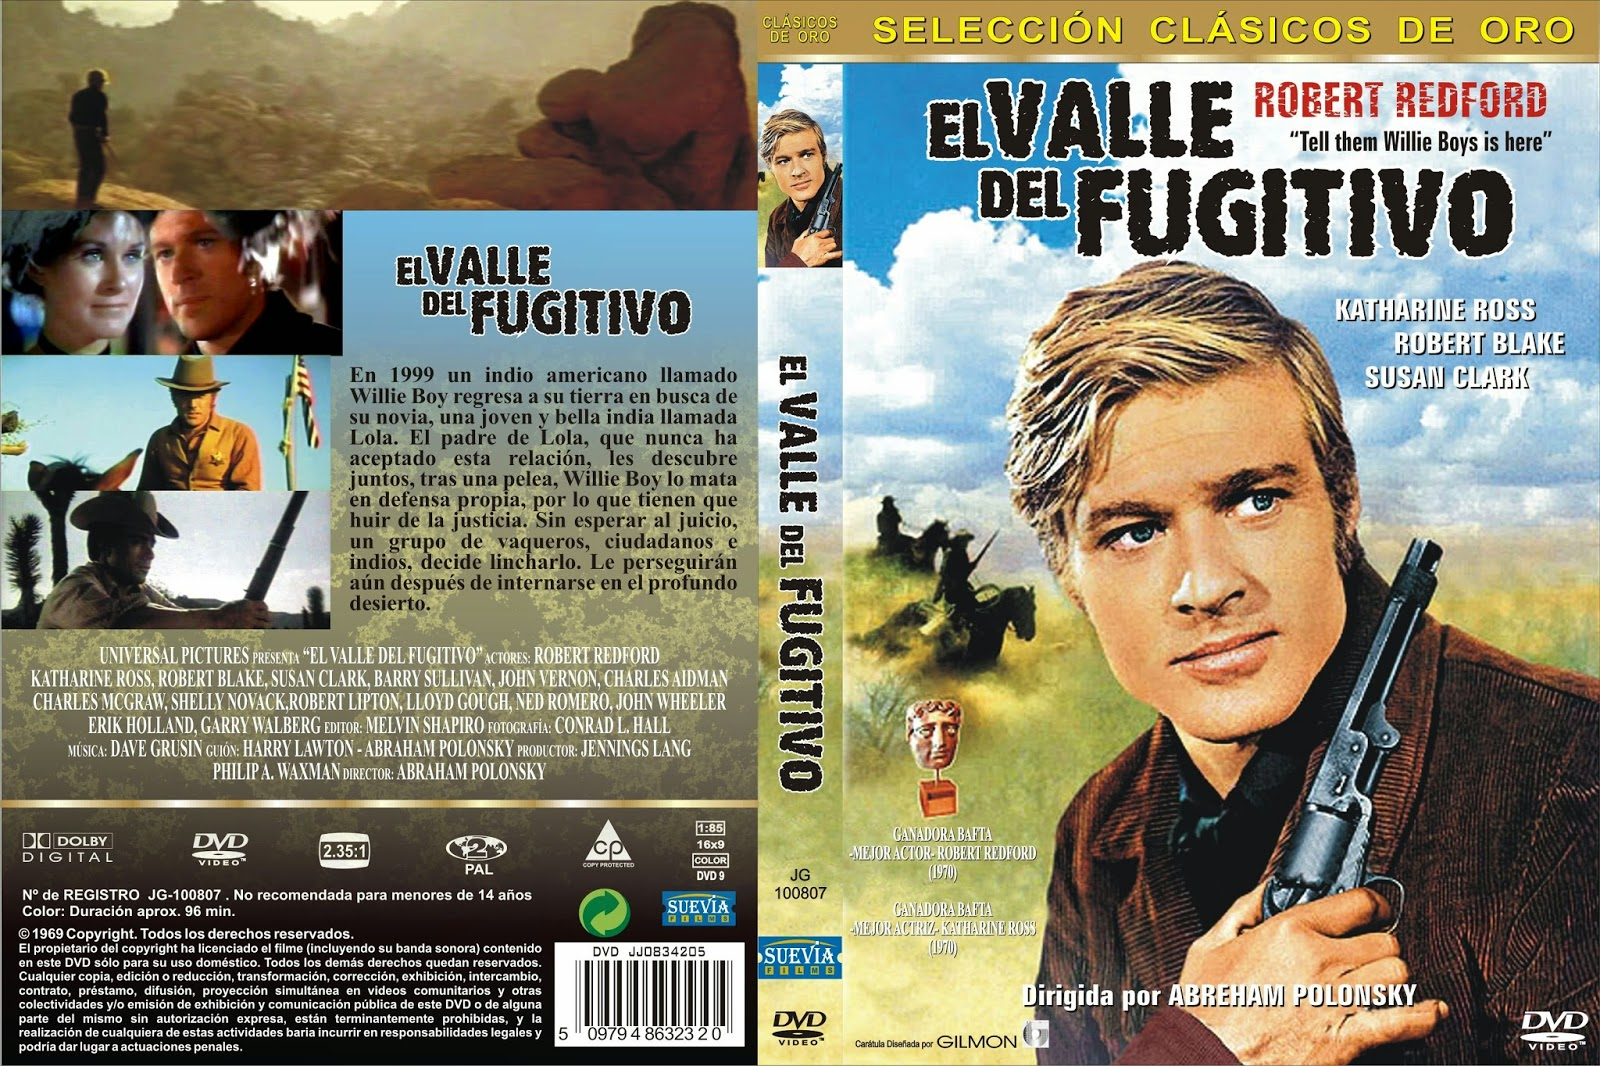 El valle del fugitivo (1969  - Tell Them Willie Boy is Here)